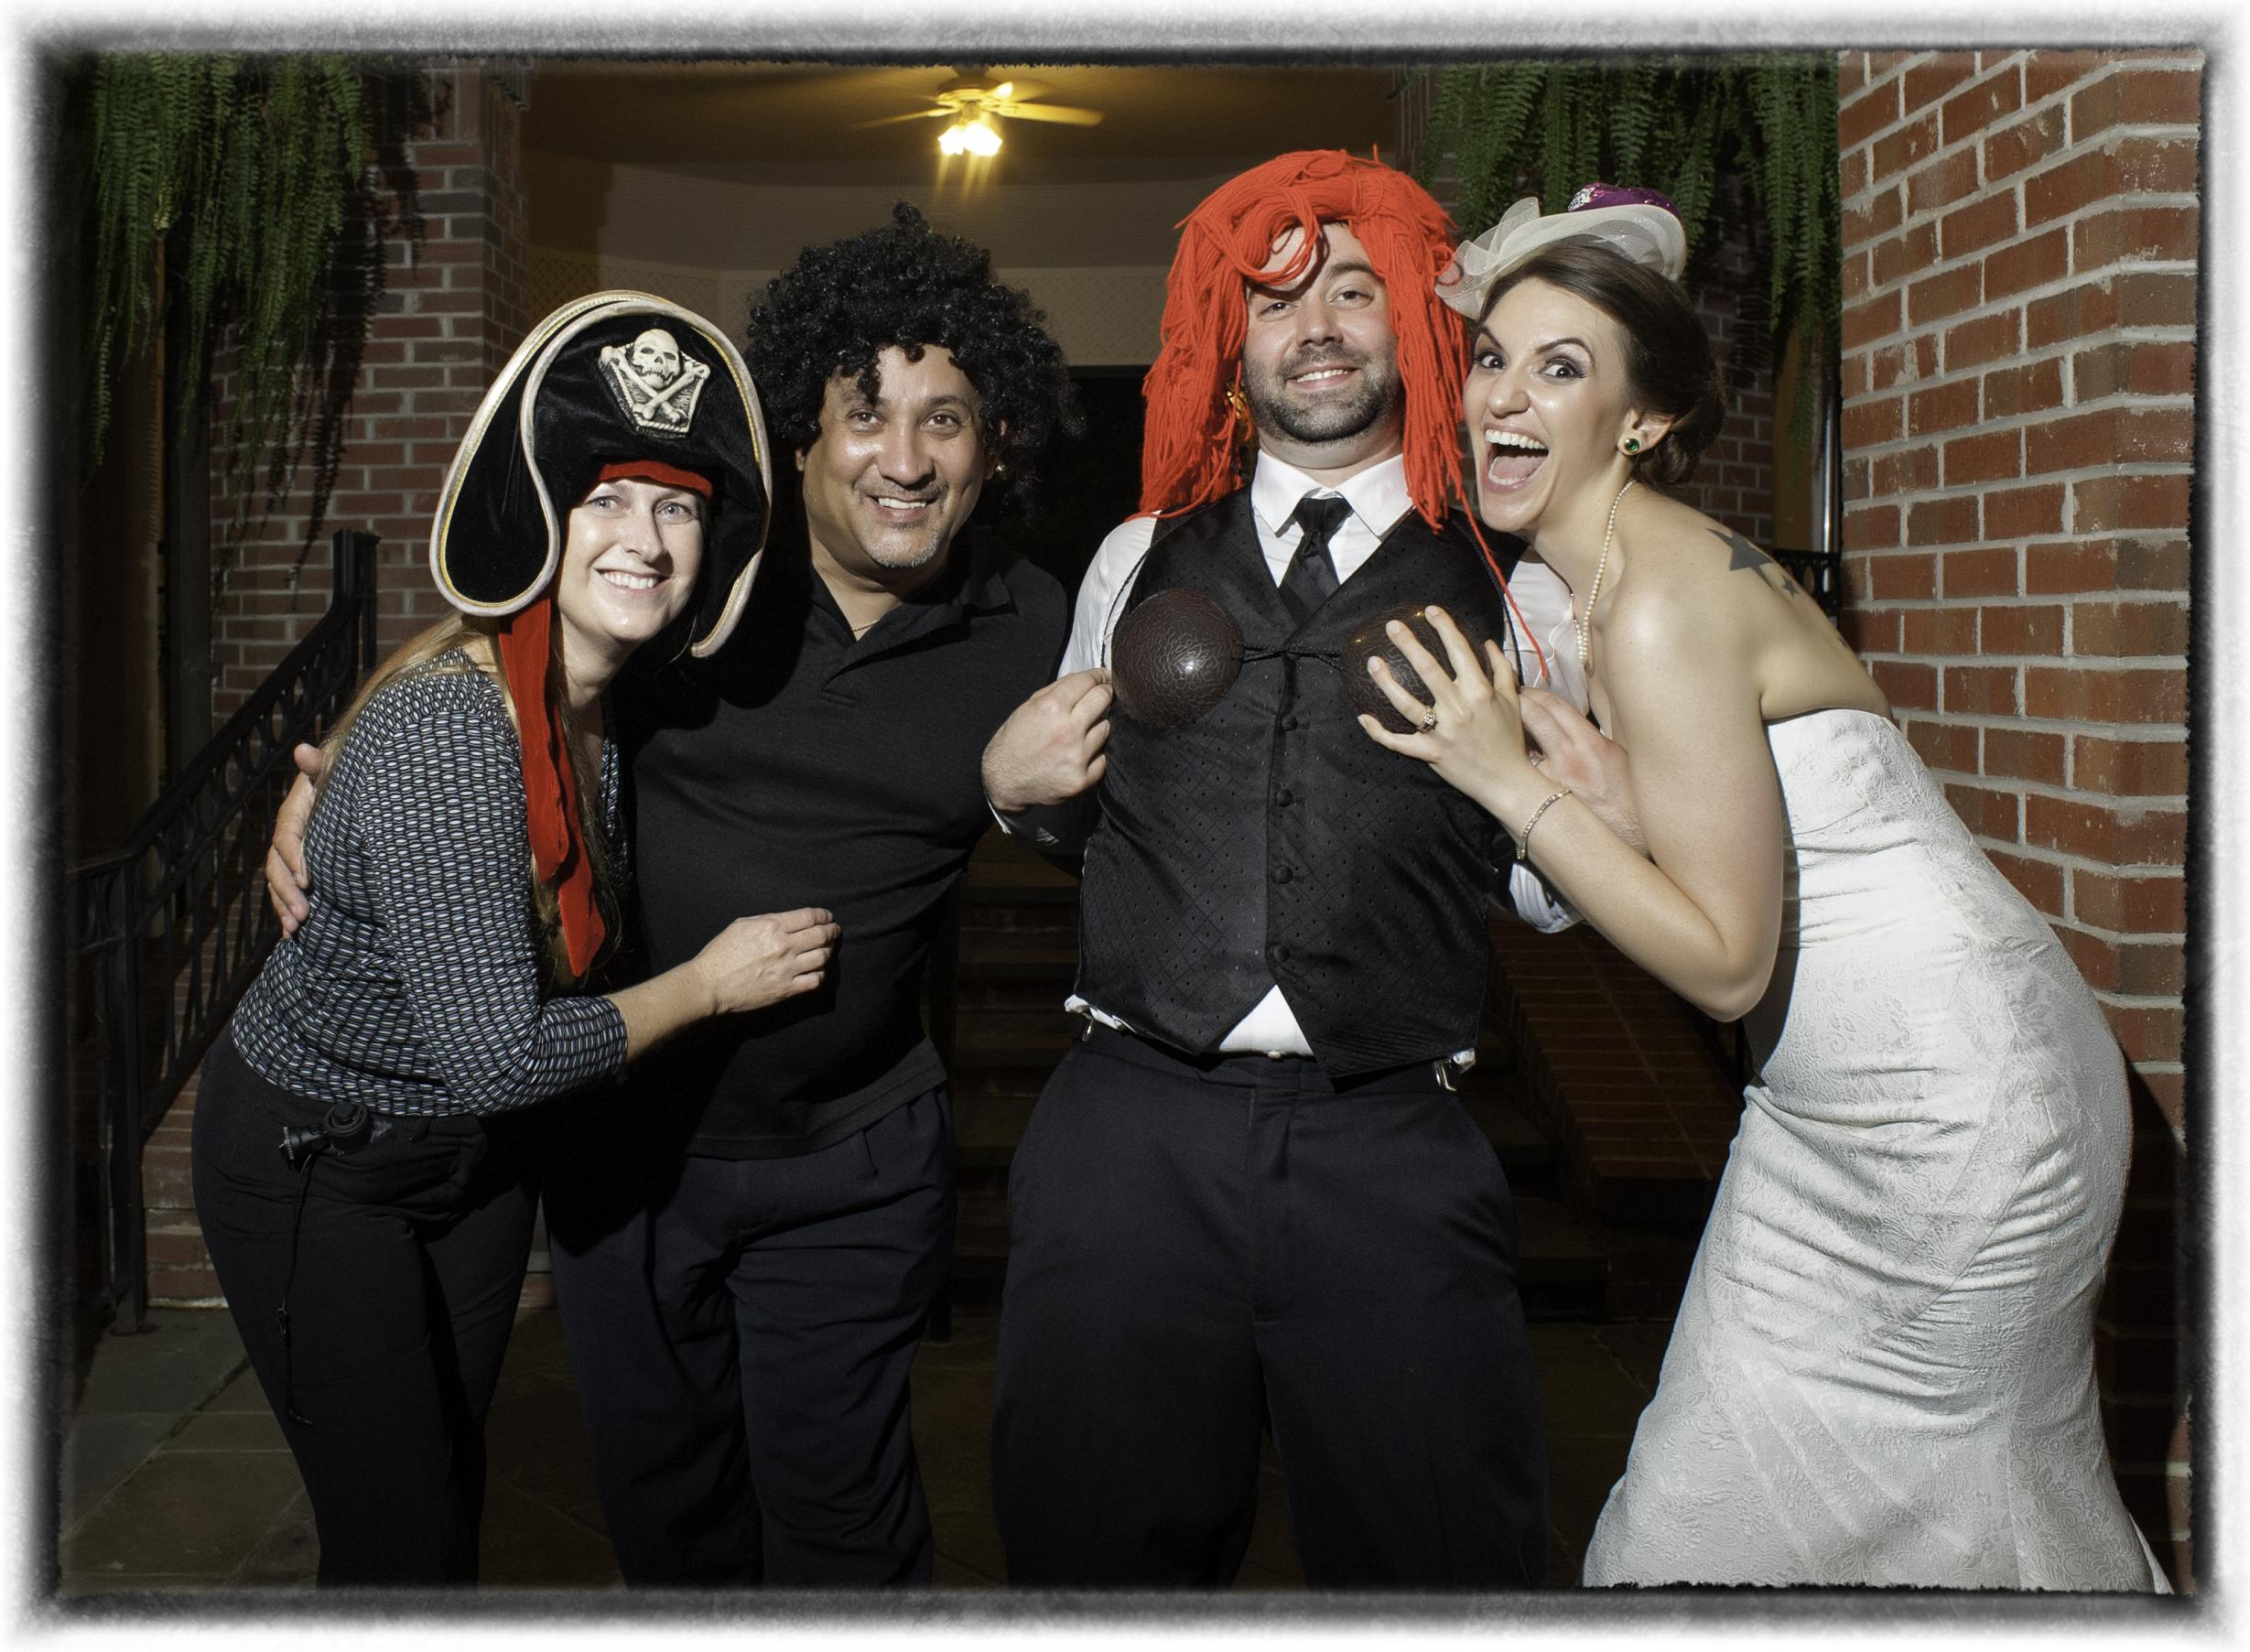 A Recent Wedding at the Doubletree Hotel in south Charlotte with Tim and Amanda Gaddy, fake hair and hats. we love to have fun